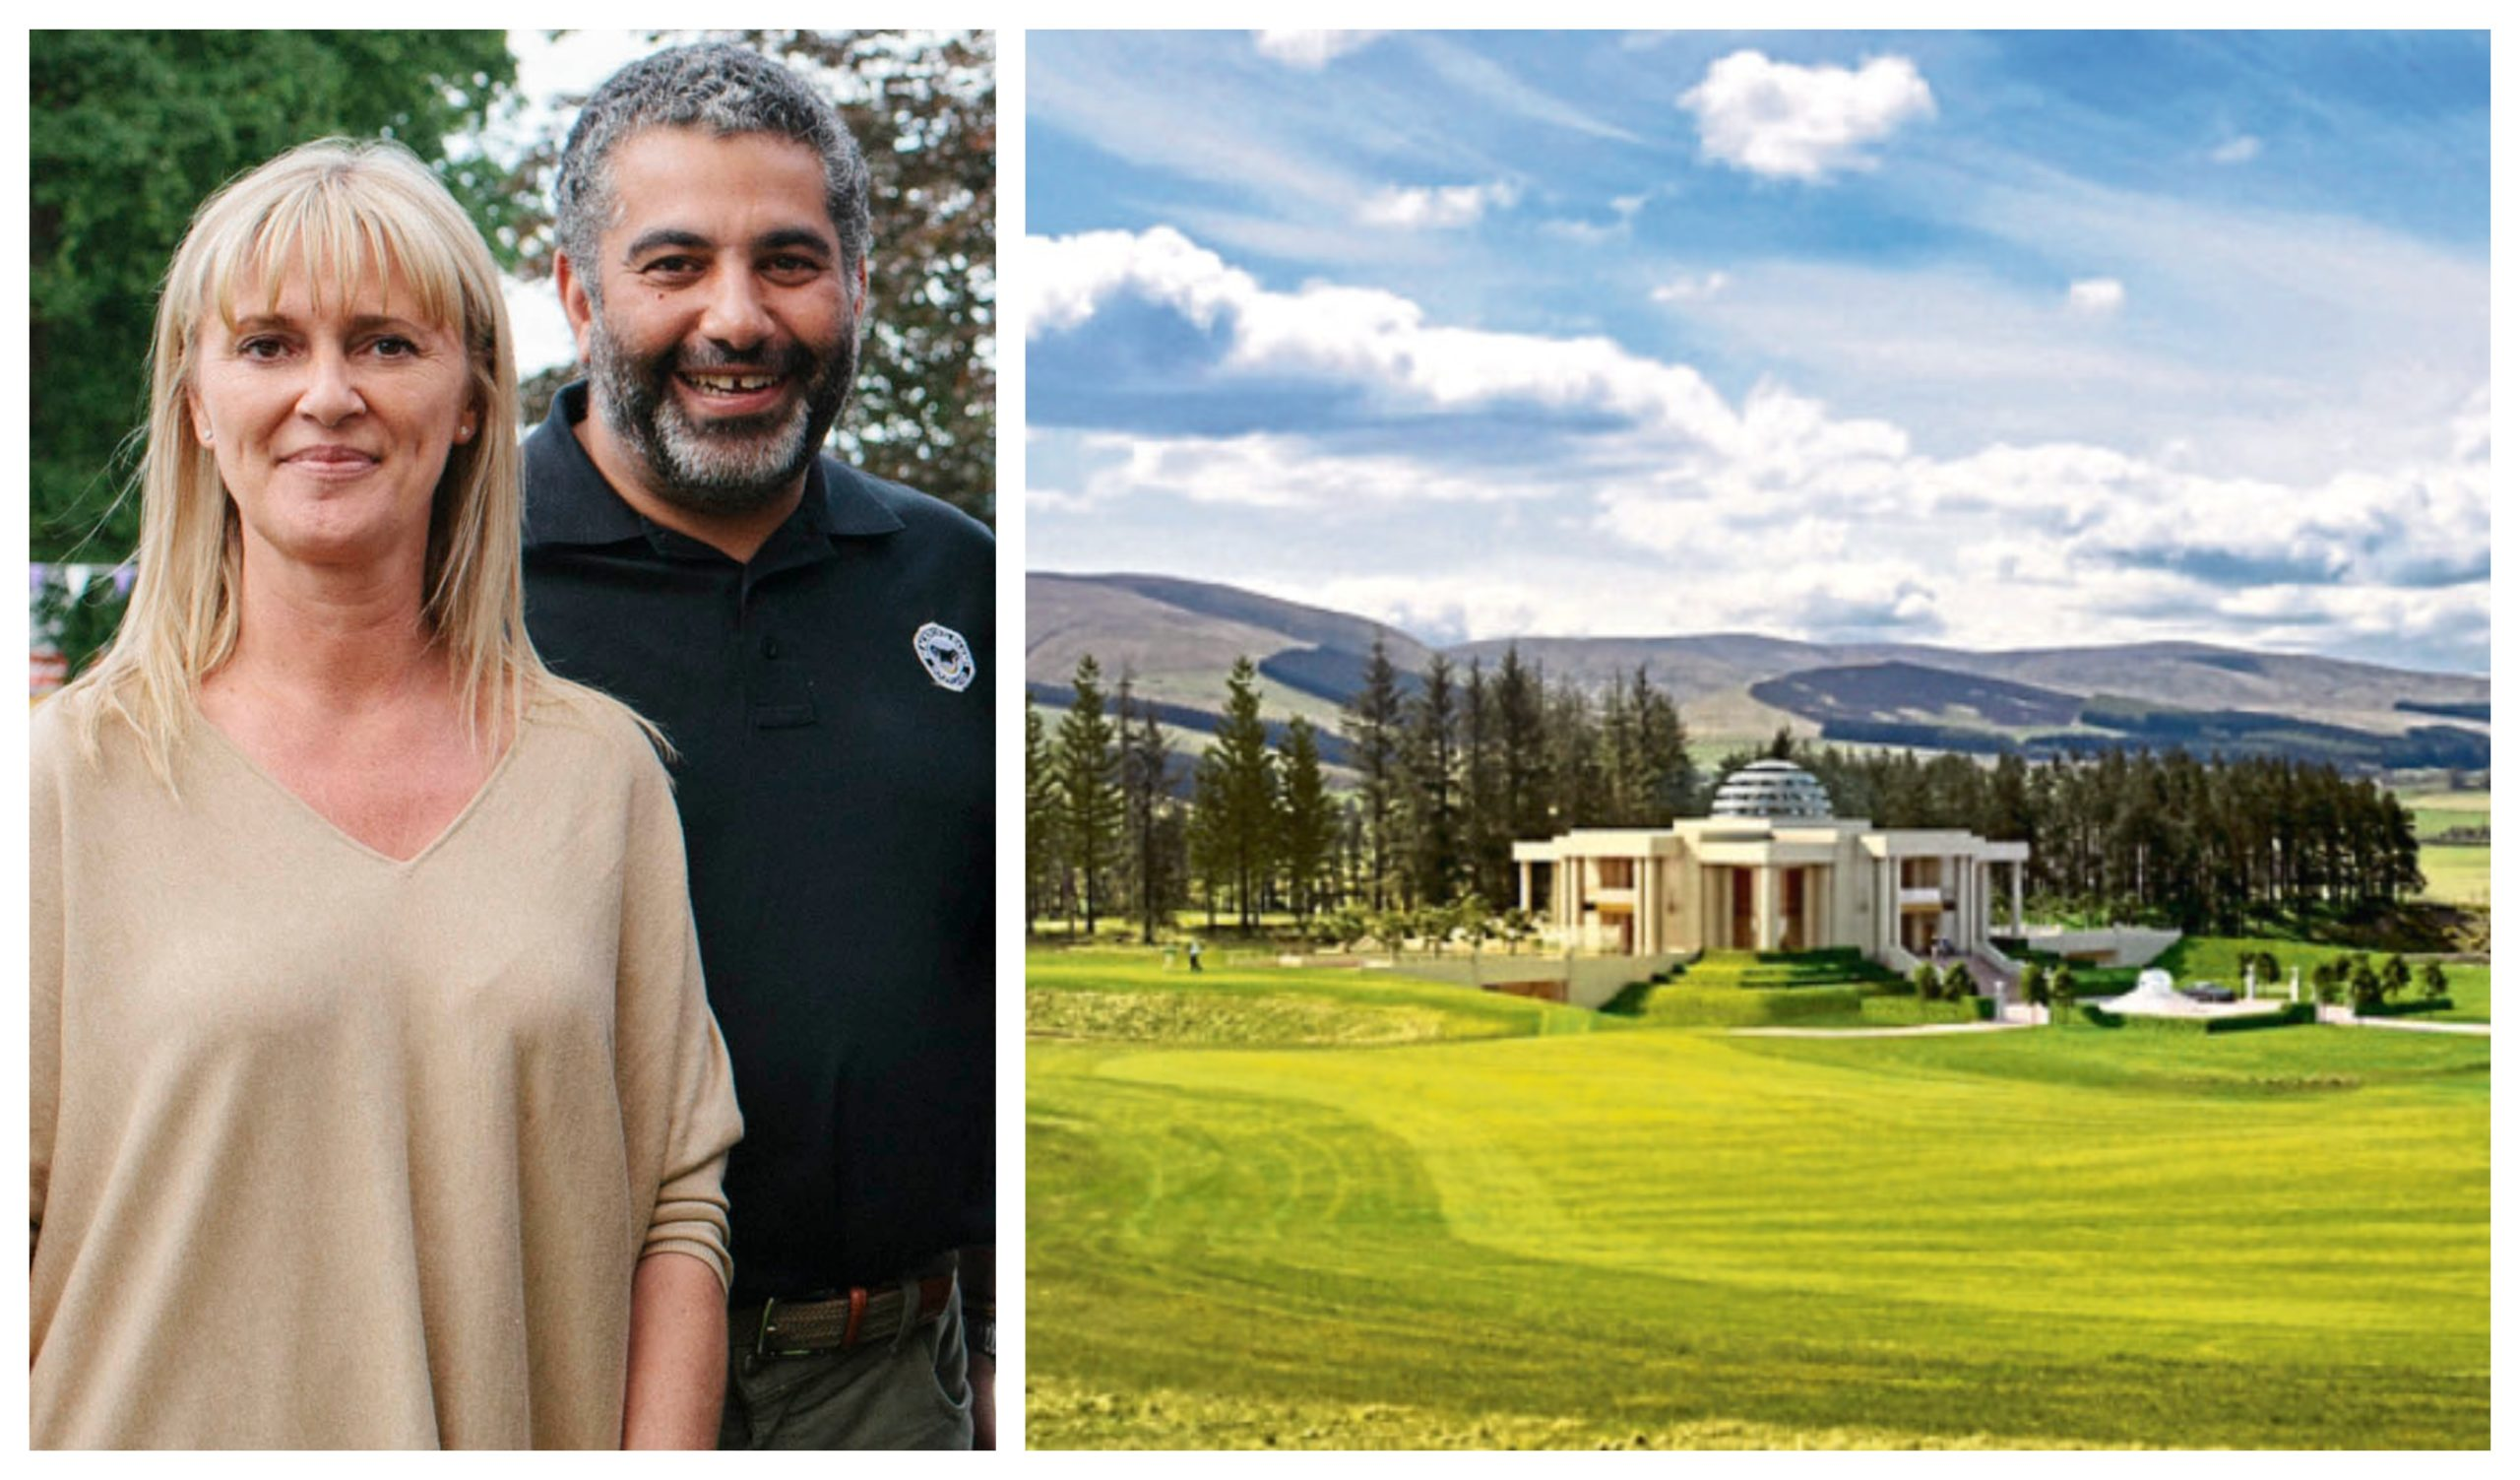 Martine Altajir and Mohsin Altajir at the 2014 Royal Highland Show (left) and the unopened gWest golf course near Gleneagles, which is owned by the Altajir family